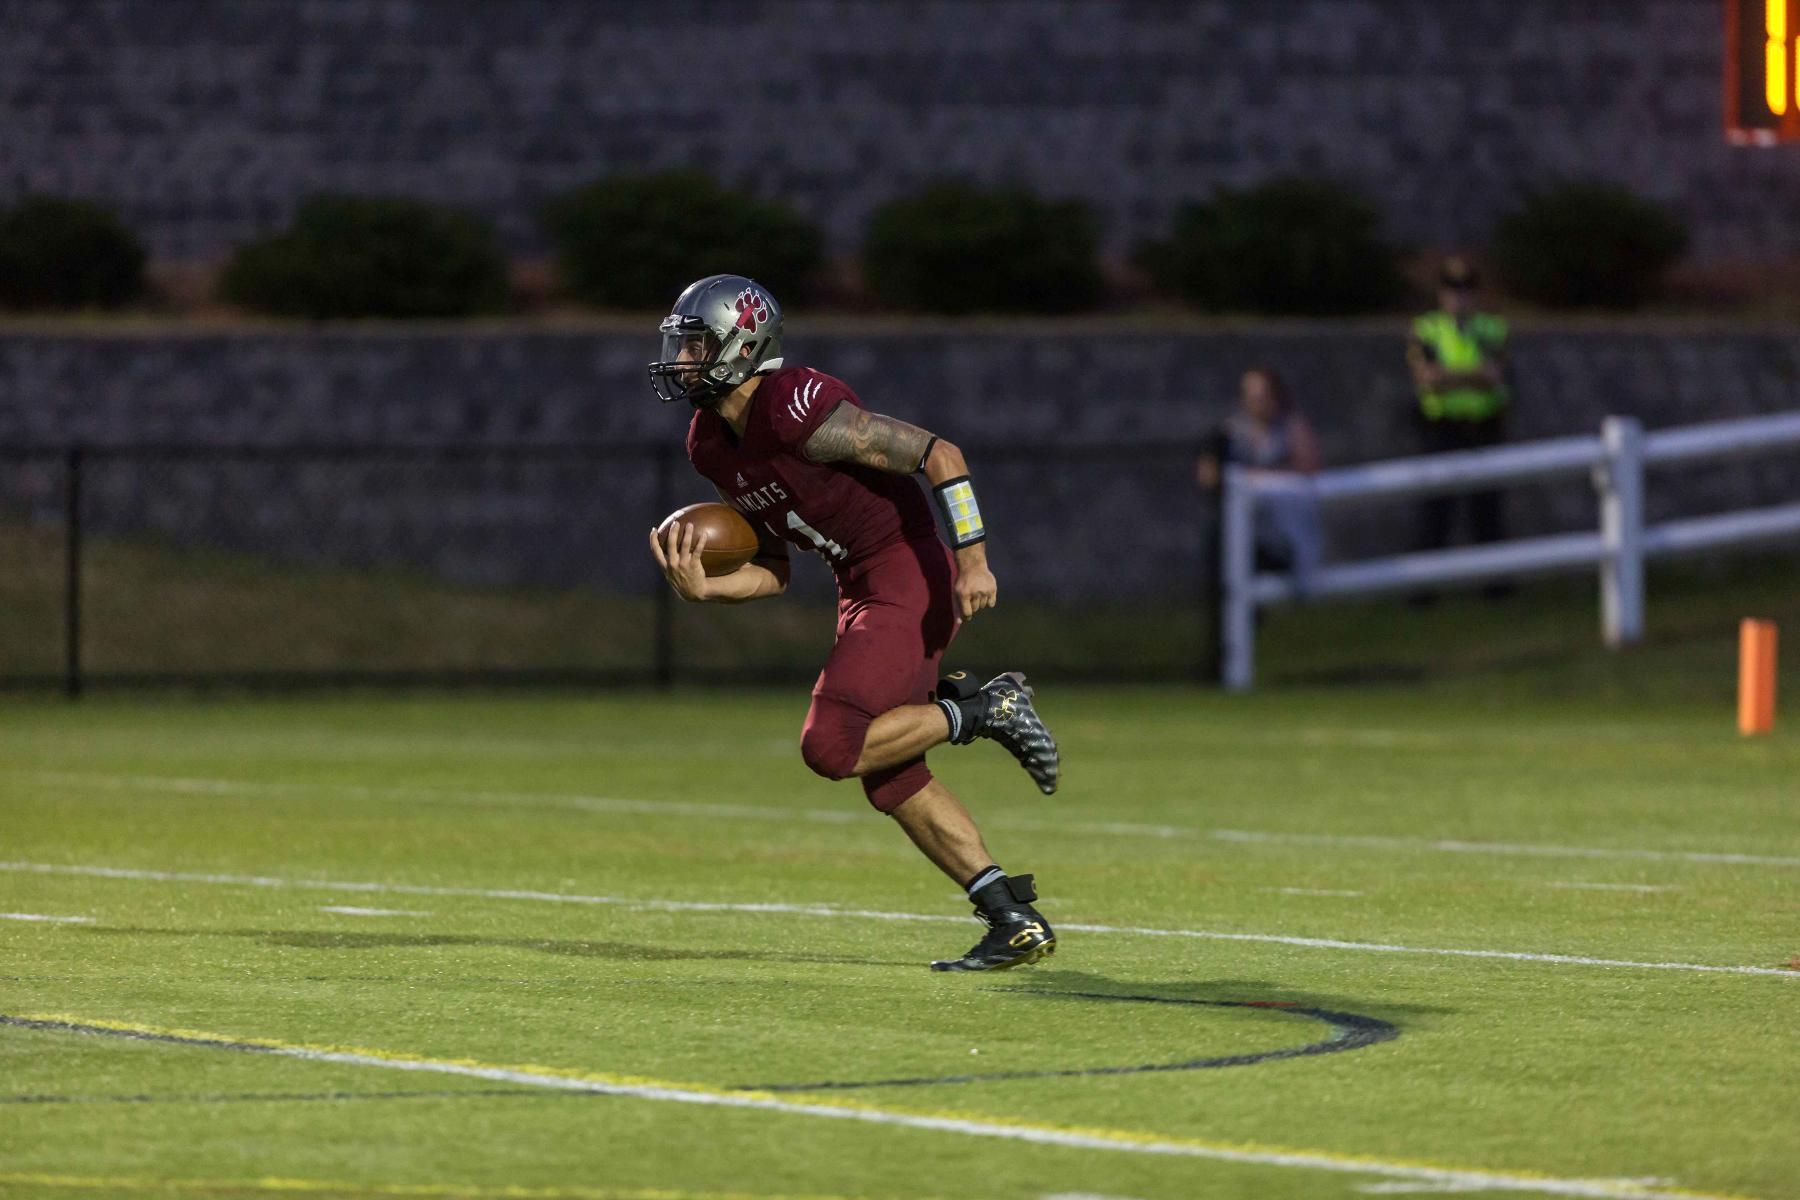 Norwich Marches to 28-7 Win over Anna Maria